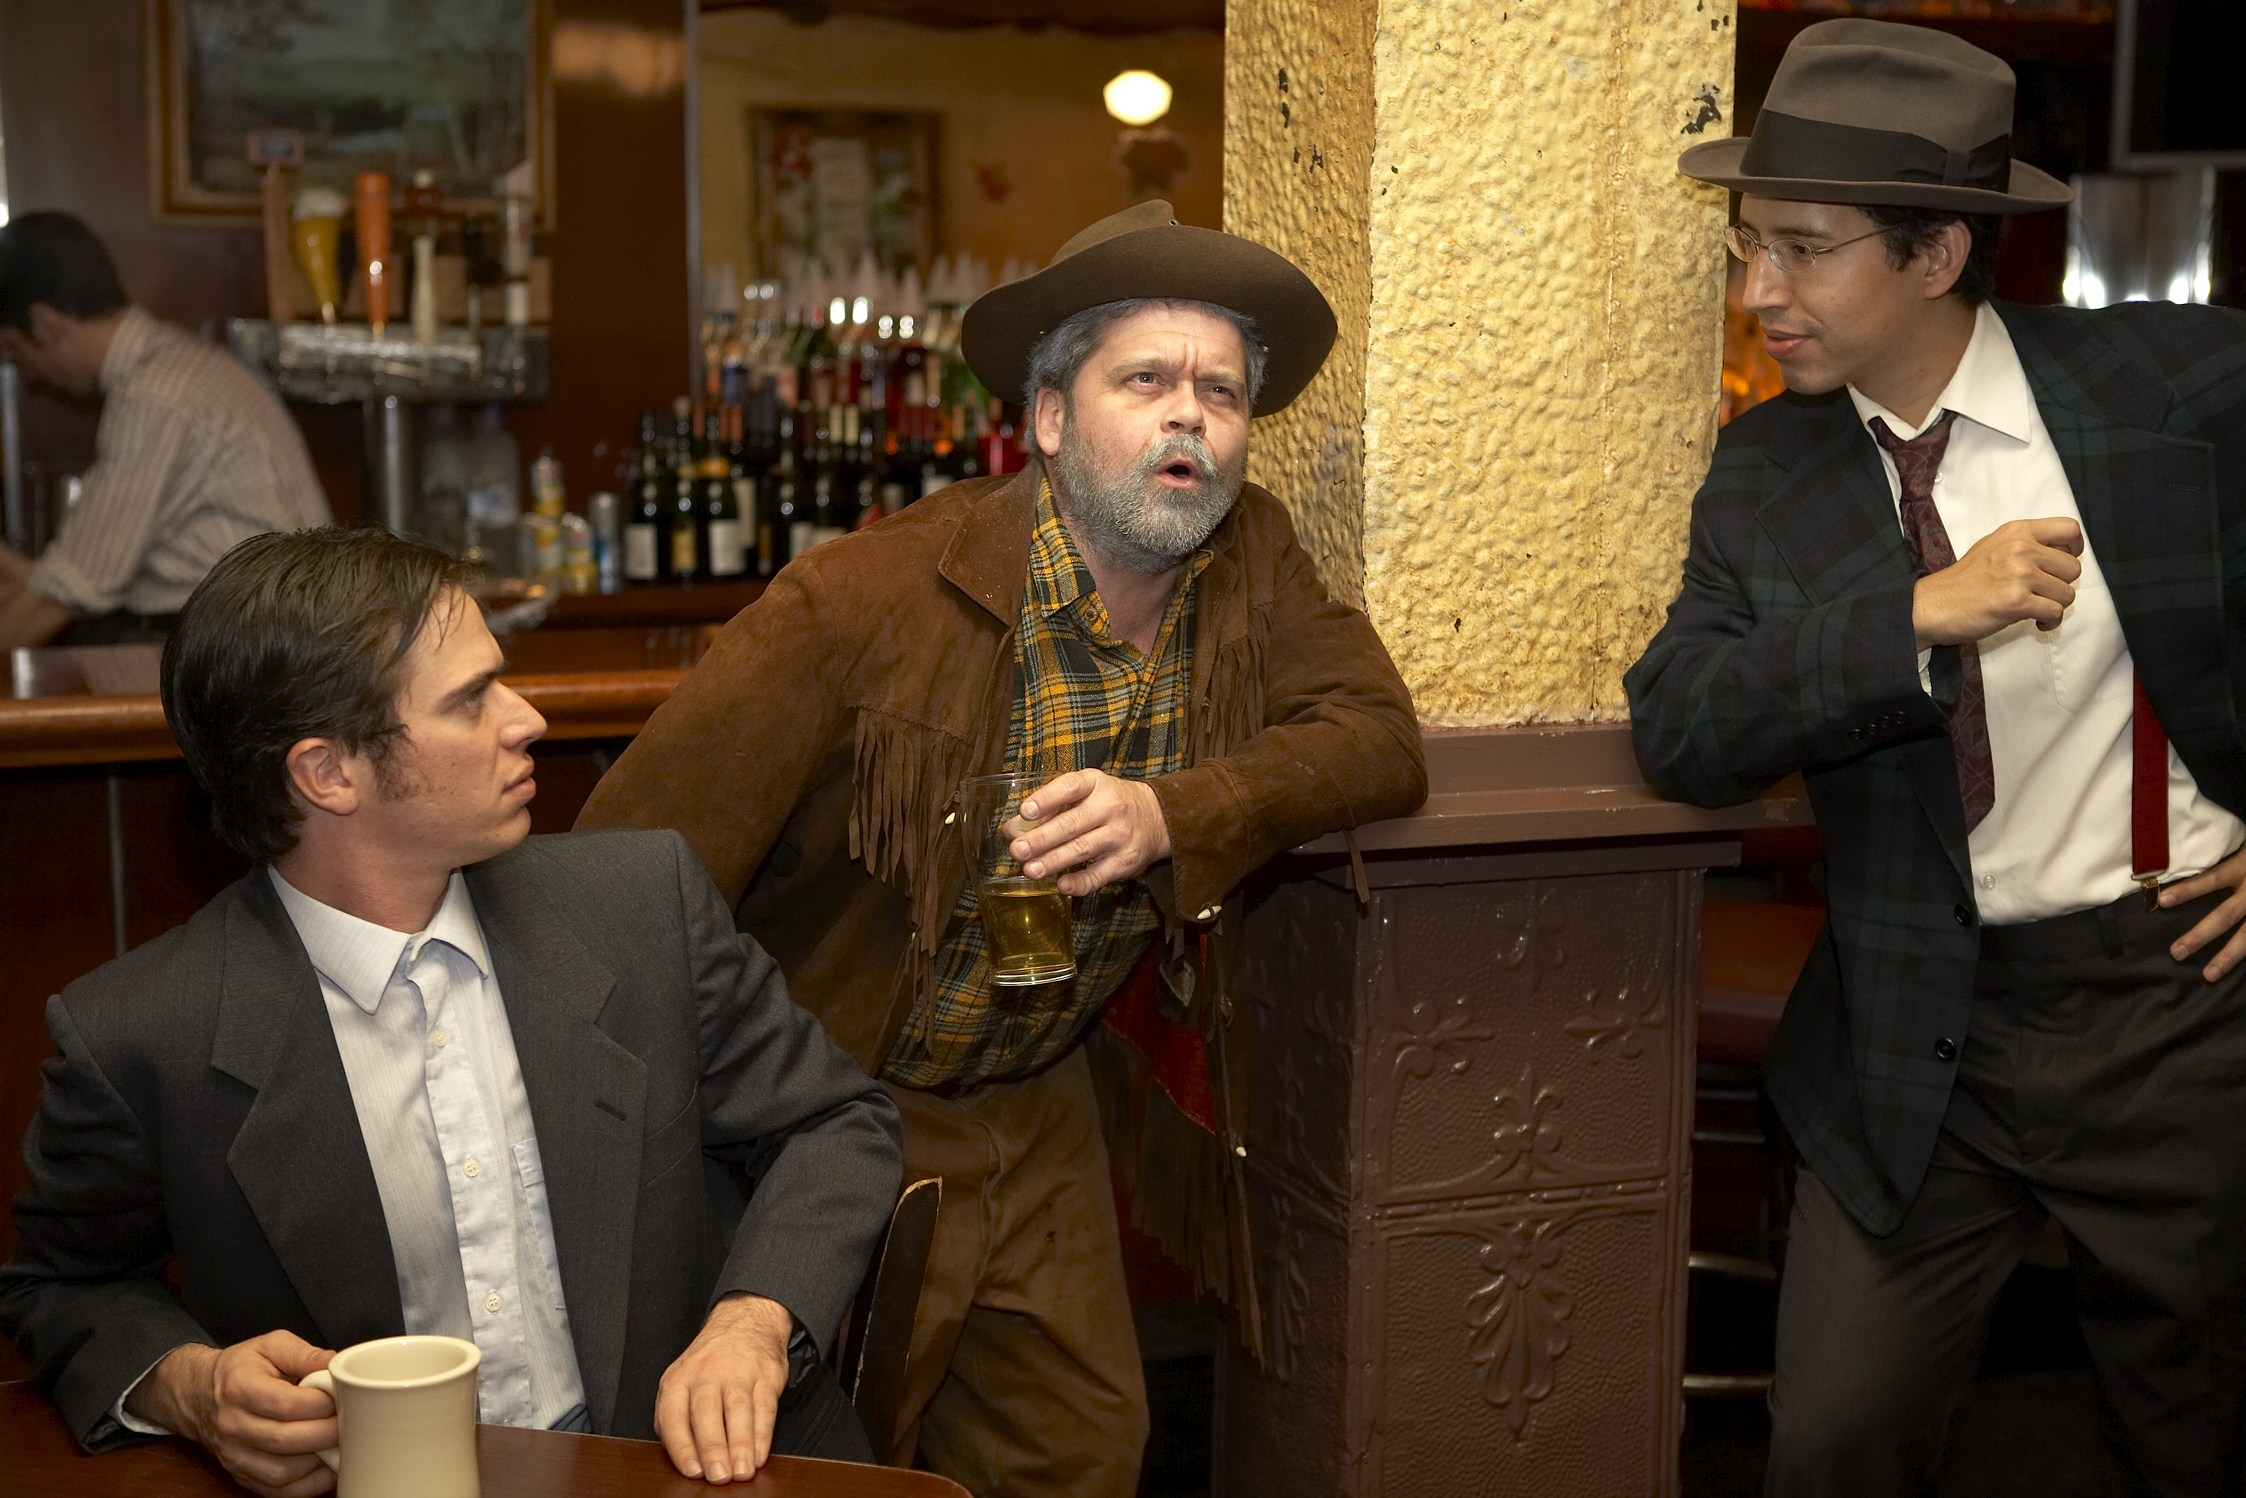 From left: Timothy Hoover (Dudley), Allen Phelps (Kit Carson), and Rafael Marinho (Harry)